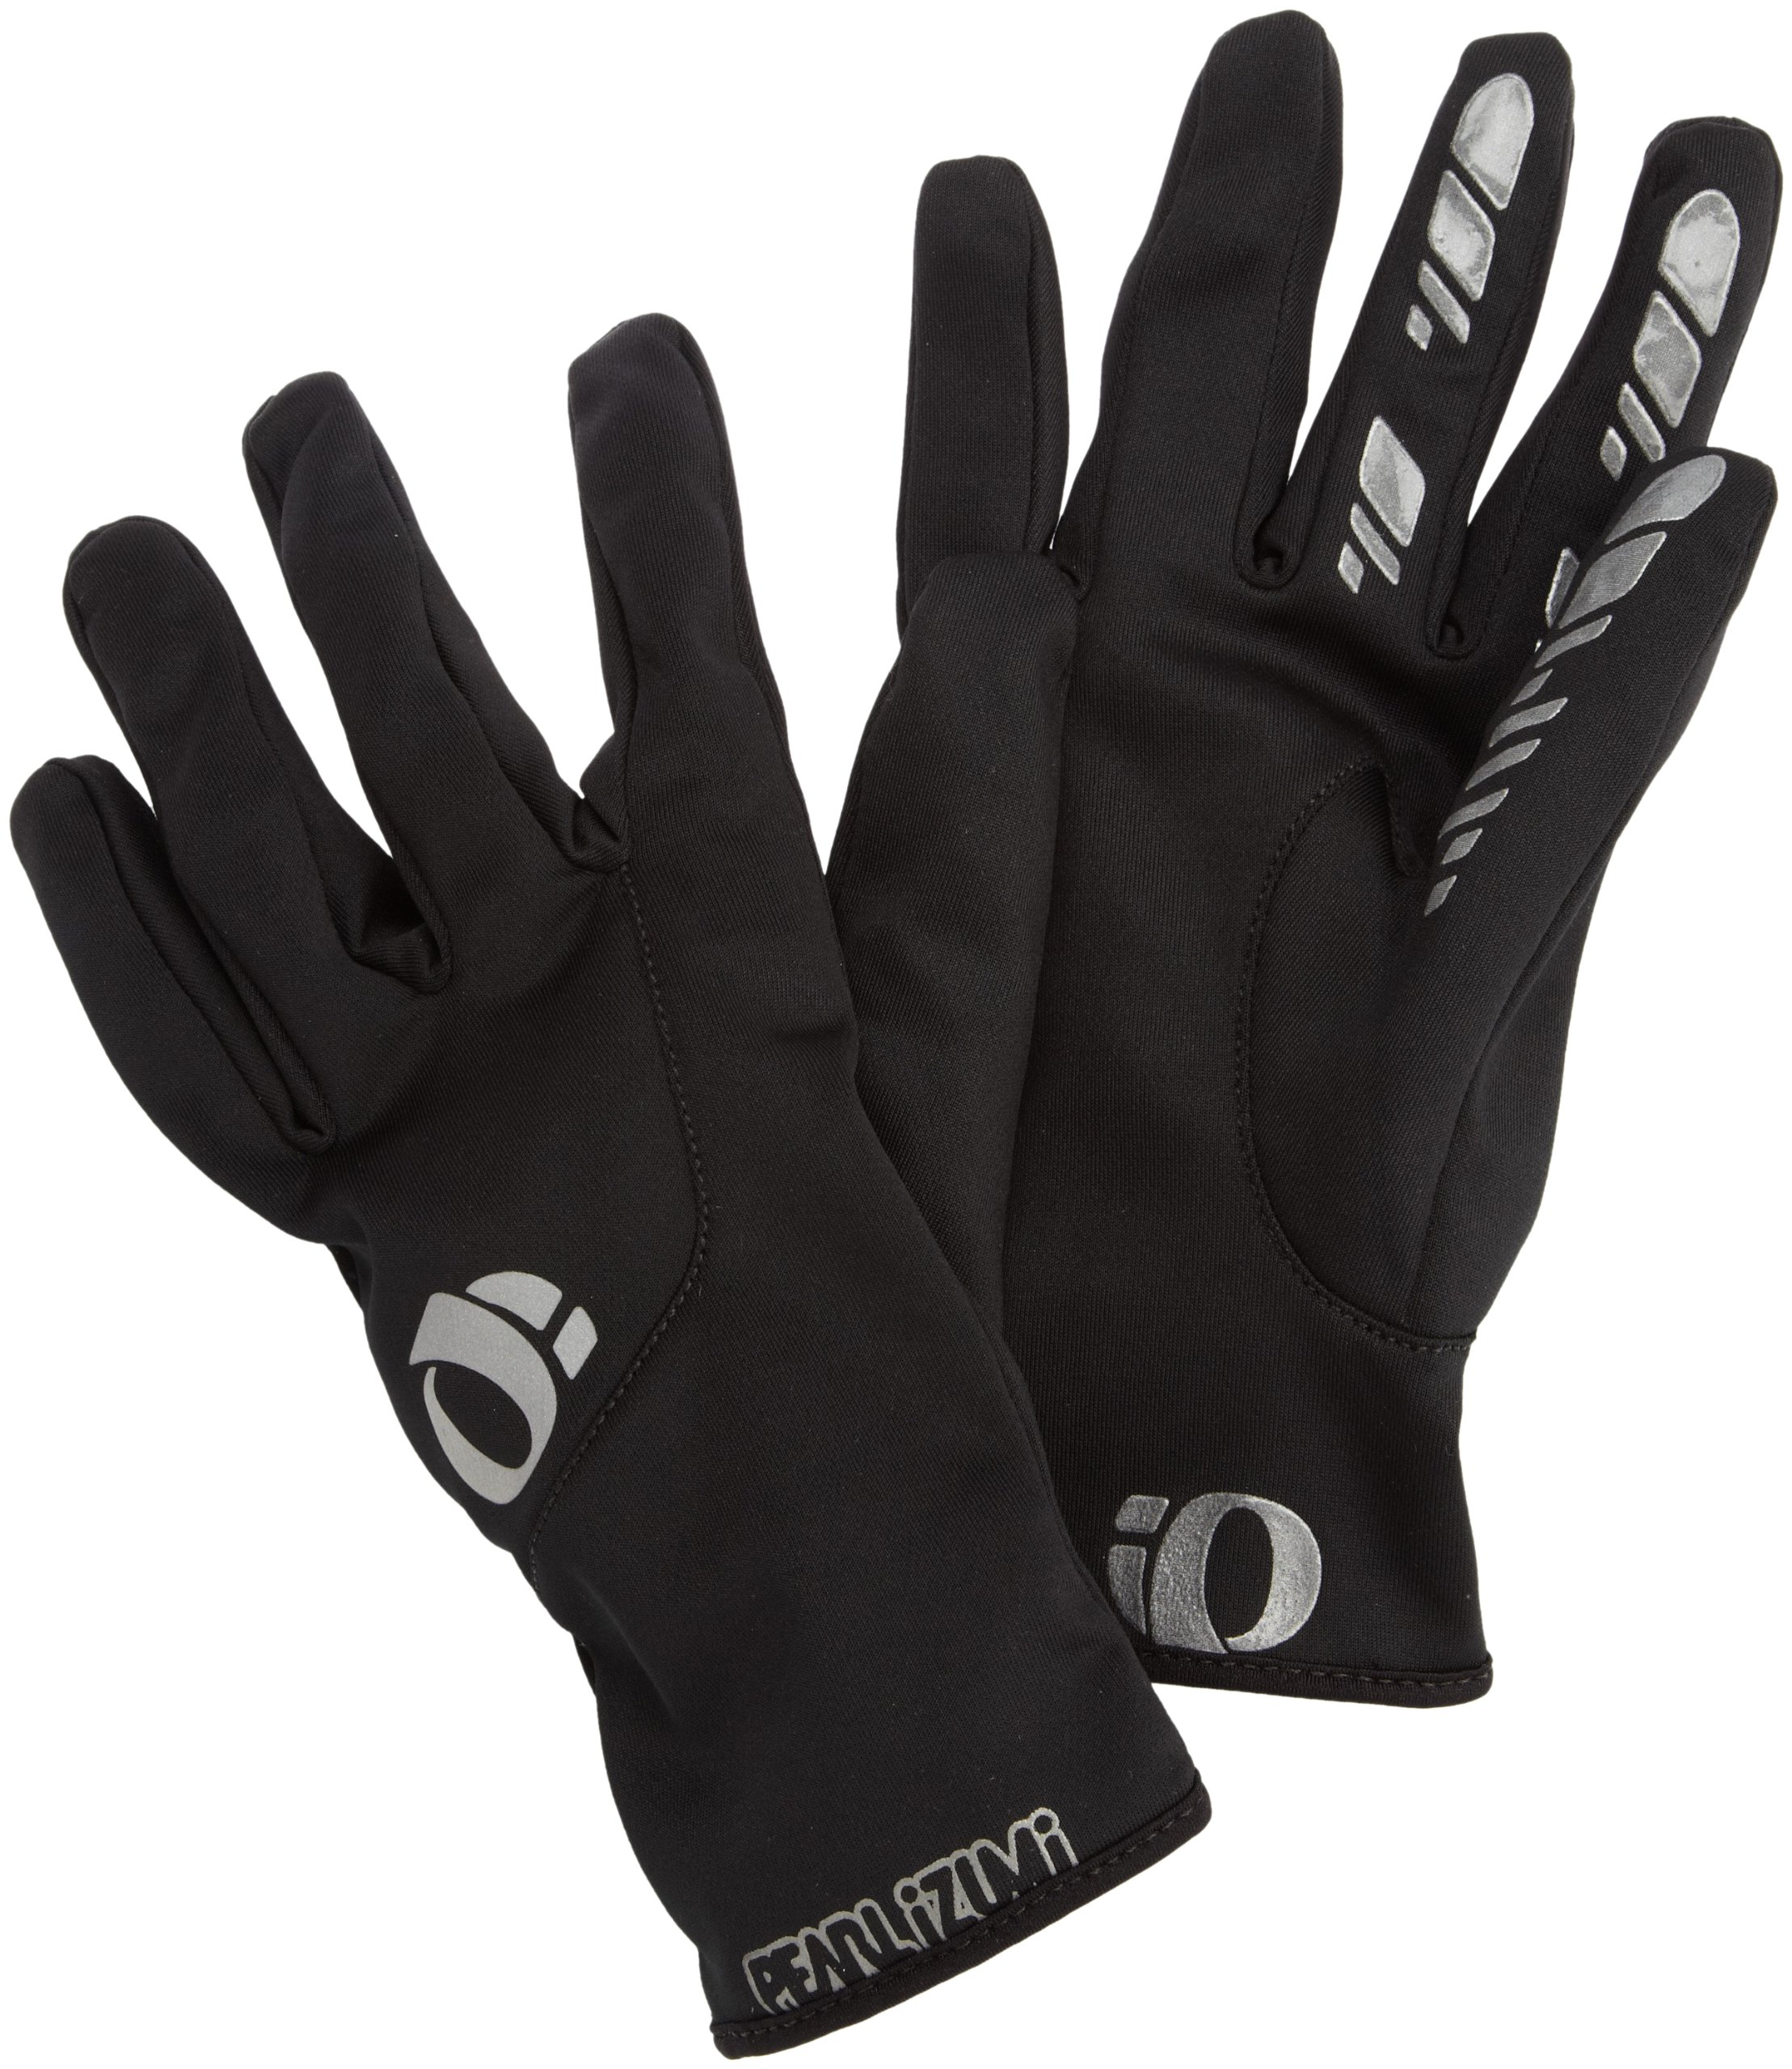 Best Rated in Men's Cycling Gloves & Helpful Customer